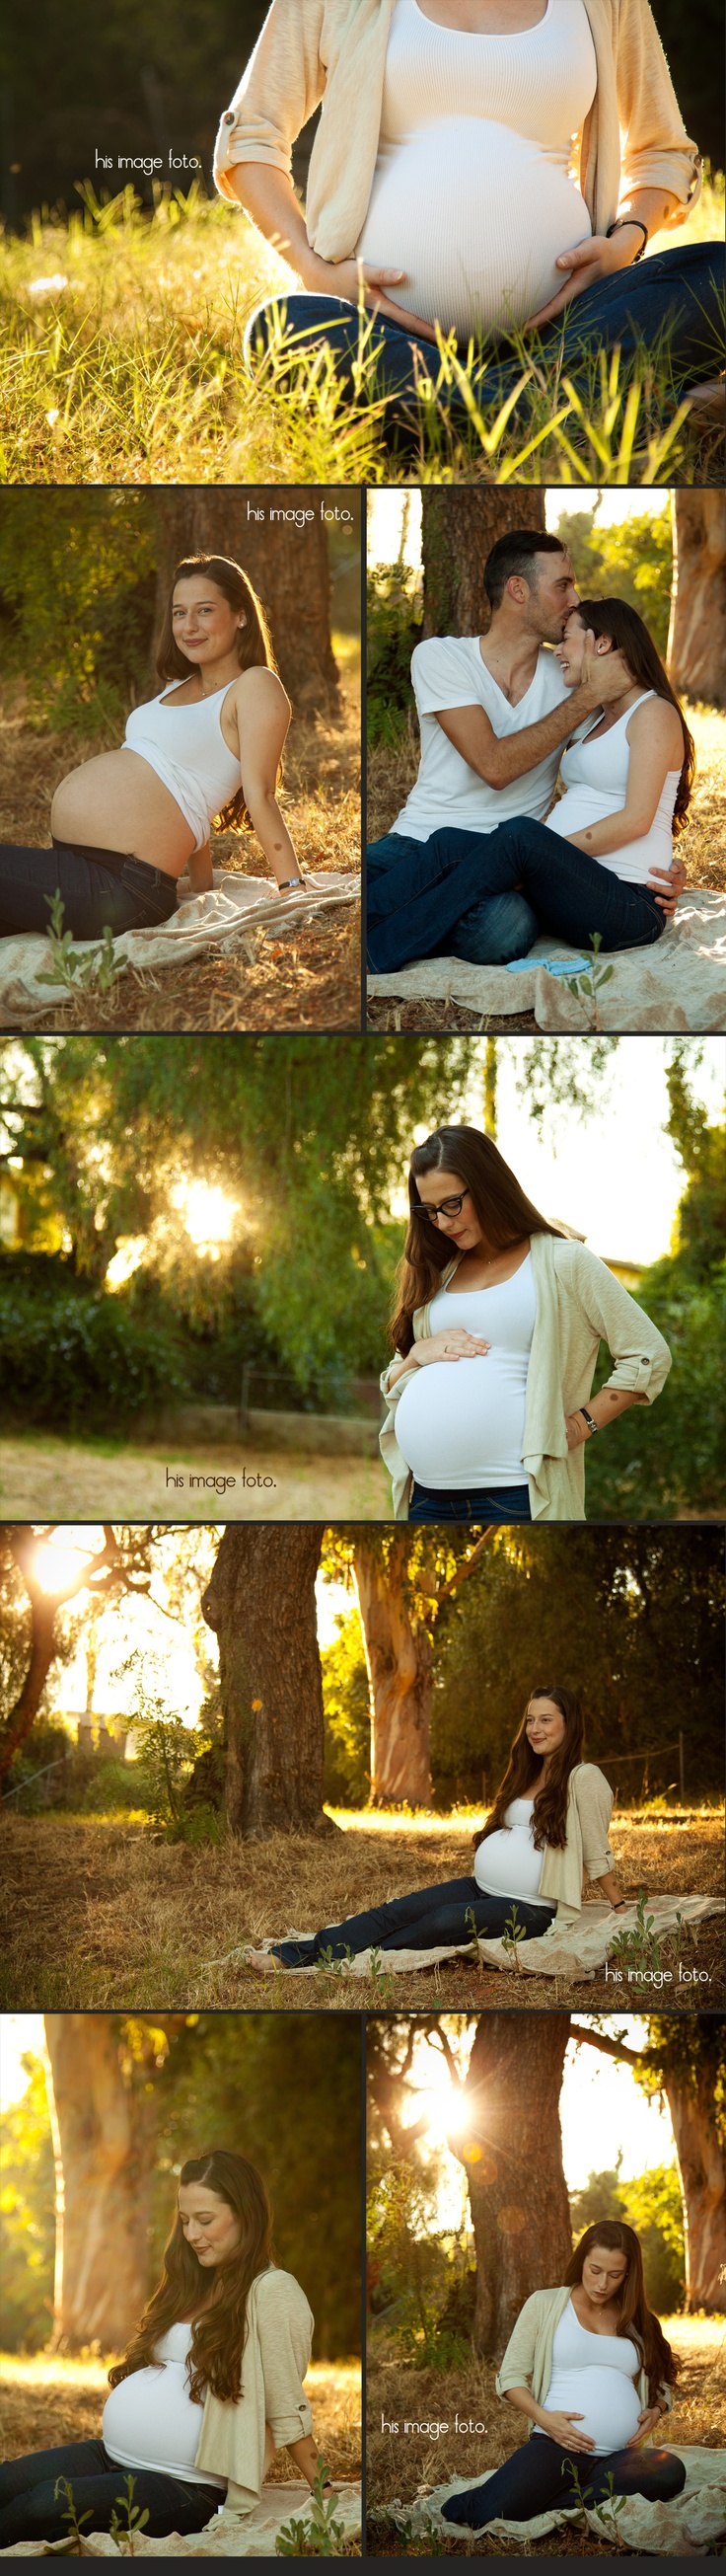 No I am not Preggo, but i am going to take pix of my bff and her son&bf so I am trying to get some ideas